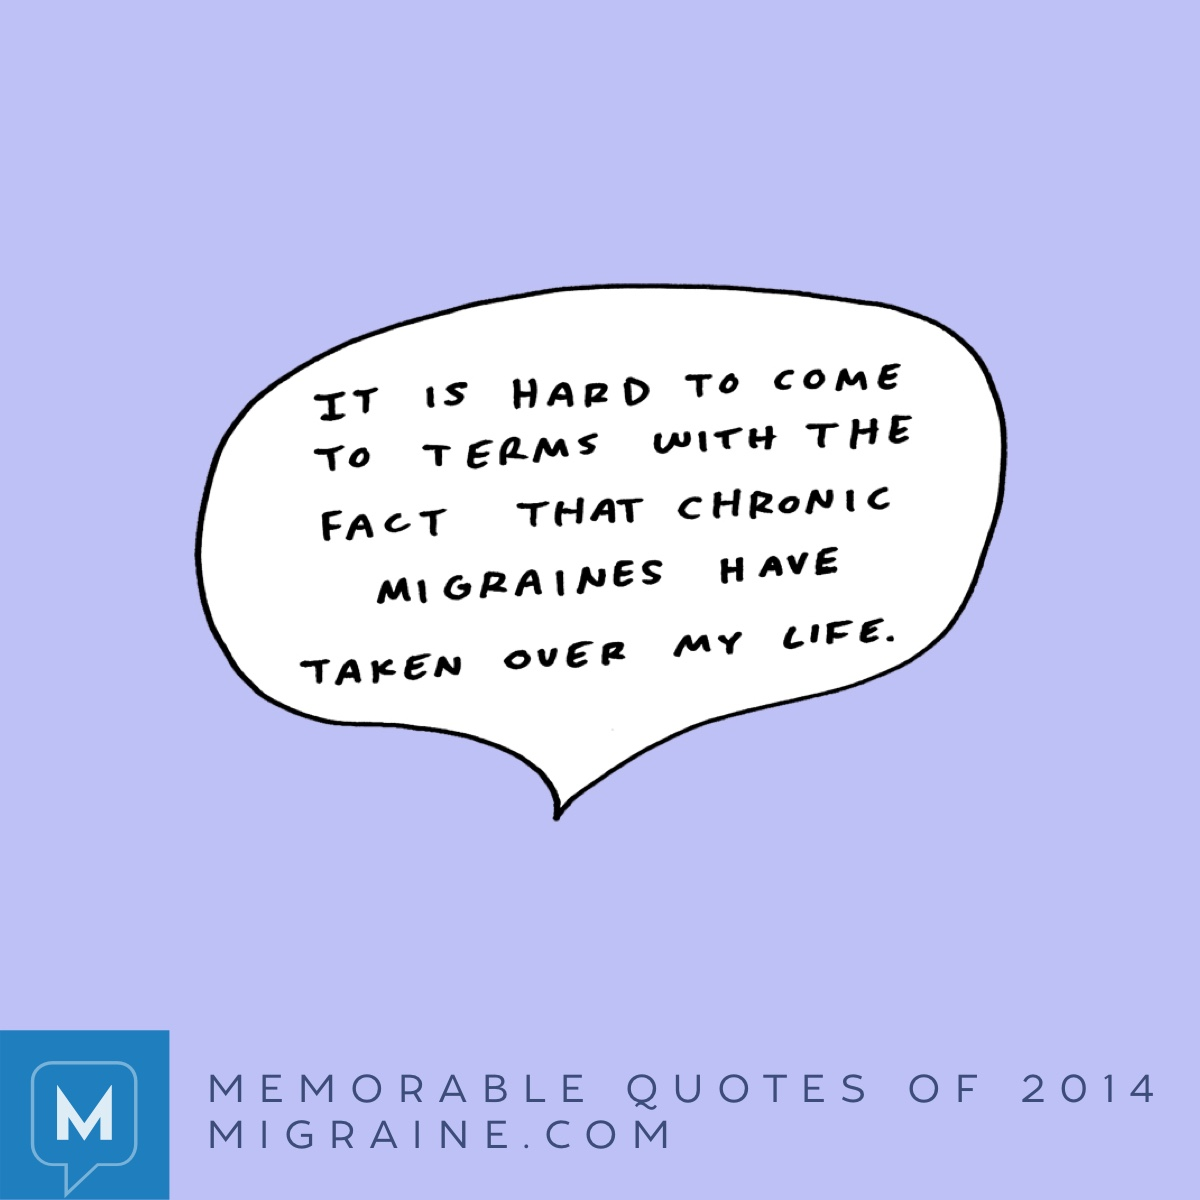 4 H Quotes Memorable Quotes Of 2014  Page 4 Of 8  Migraine